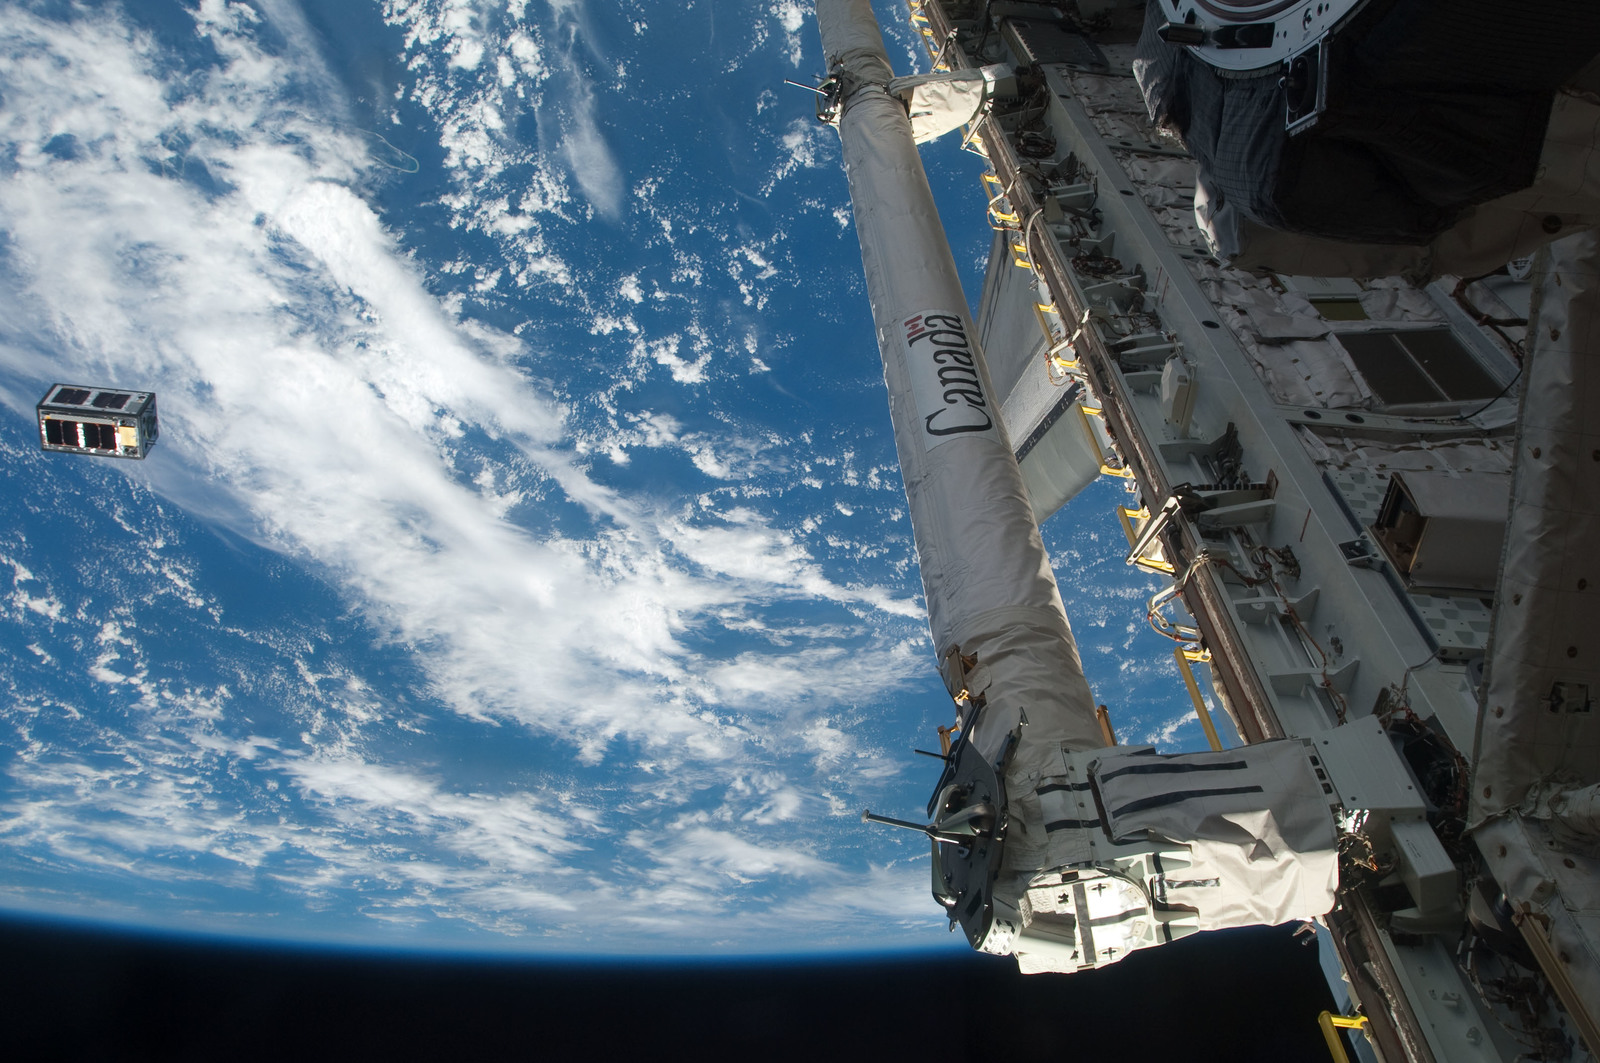 S126E026972 - STS-126 - Picosat Deployment from Payload Bay of Endeavour